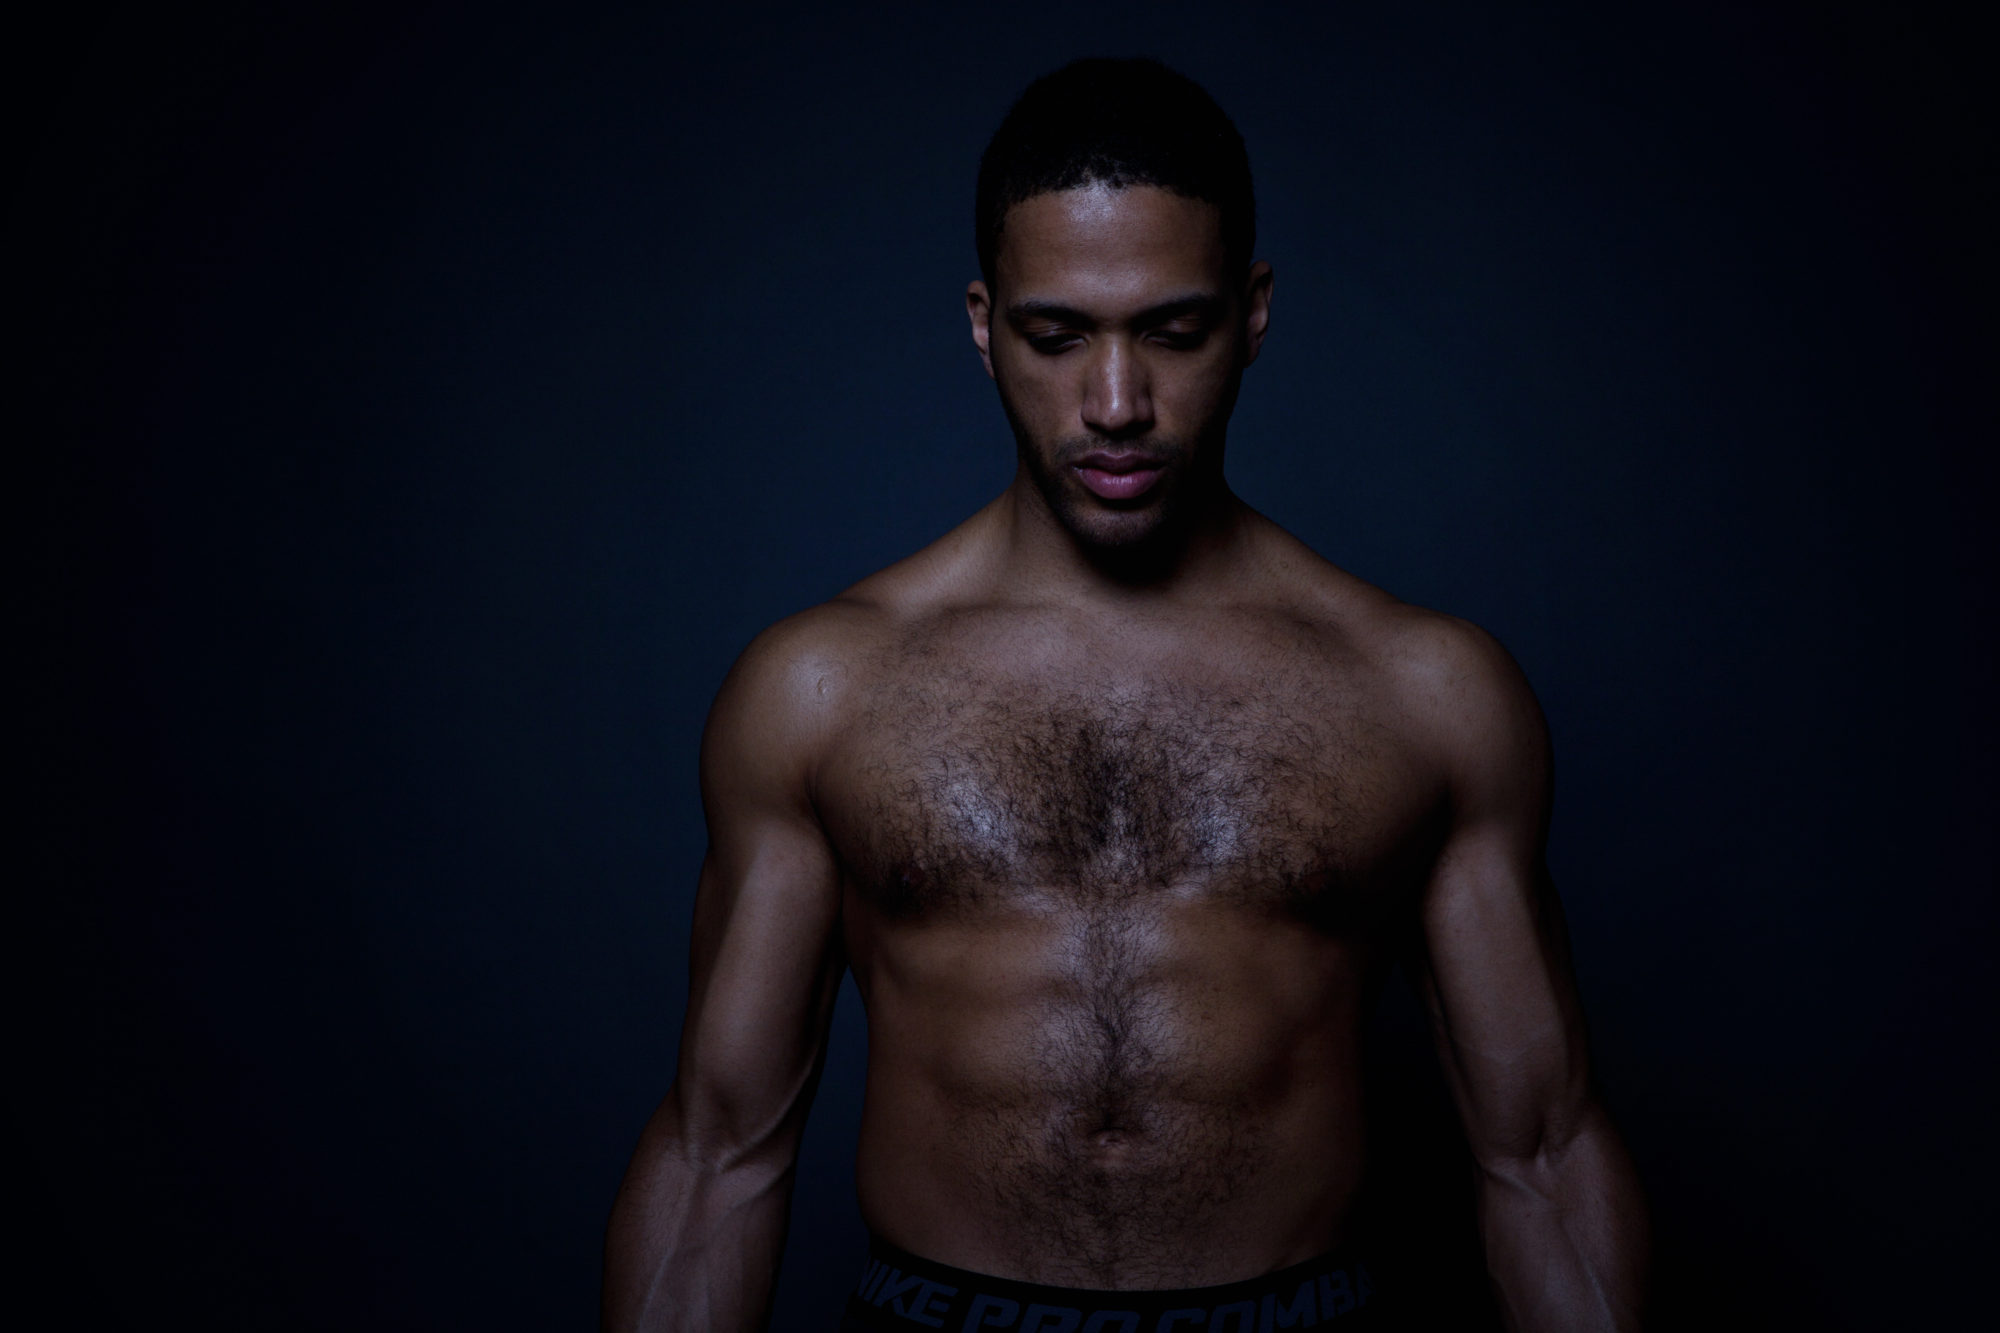 Eurovision Song Contest 2018 Austria Nobody But You By Cesar Sampson Talk About Pop Music We do not have any tags for nobody but you lyrics. eurovision song contest 2018 austria